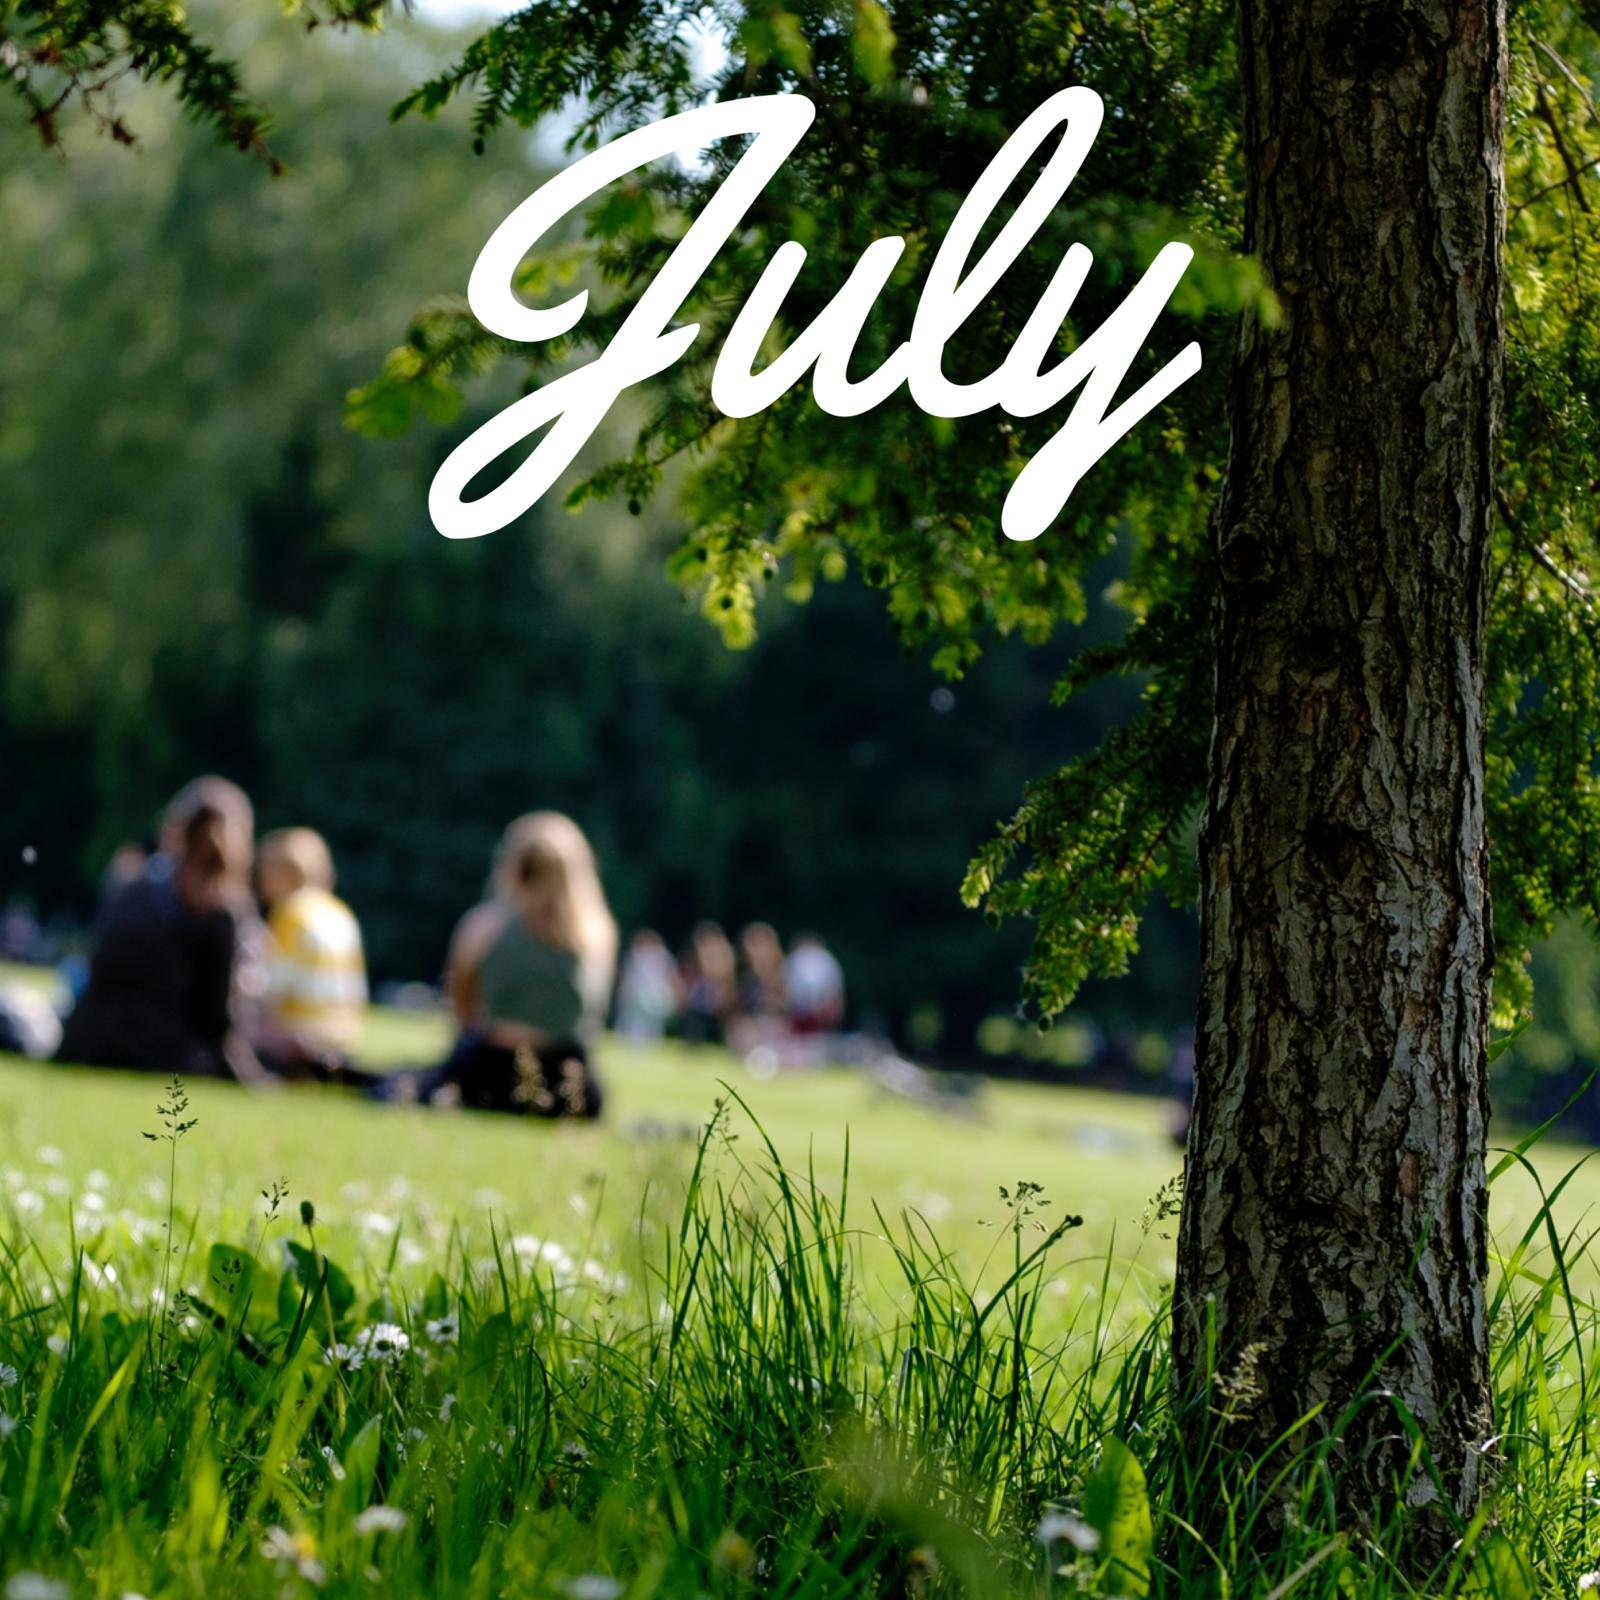 July 2020 meeting: Picnic & Olympics in the park